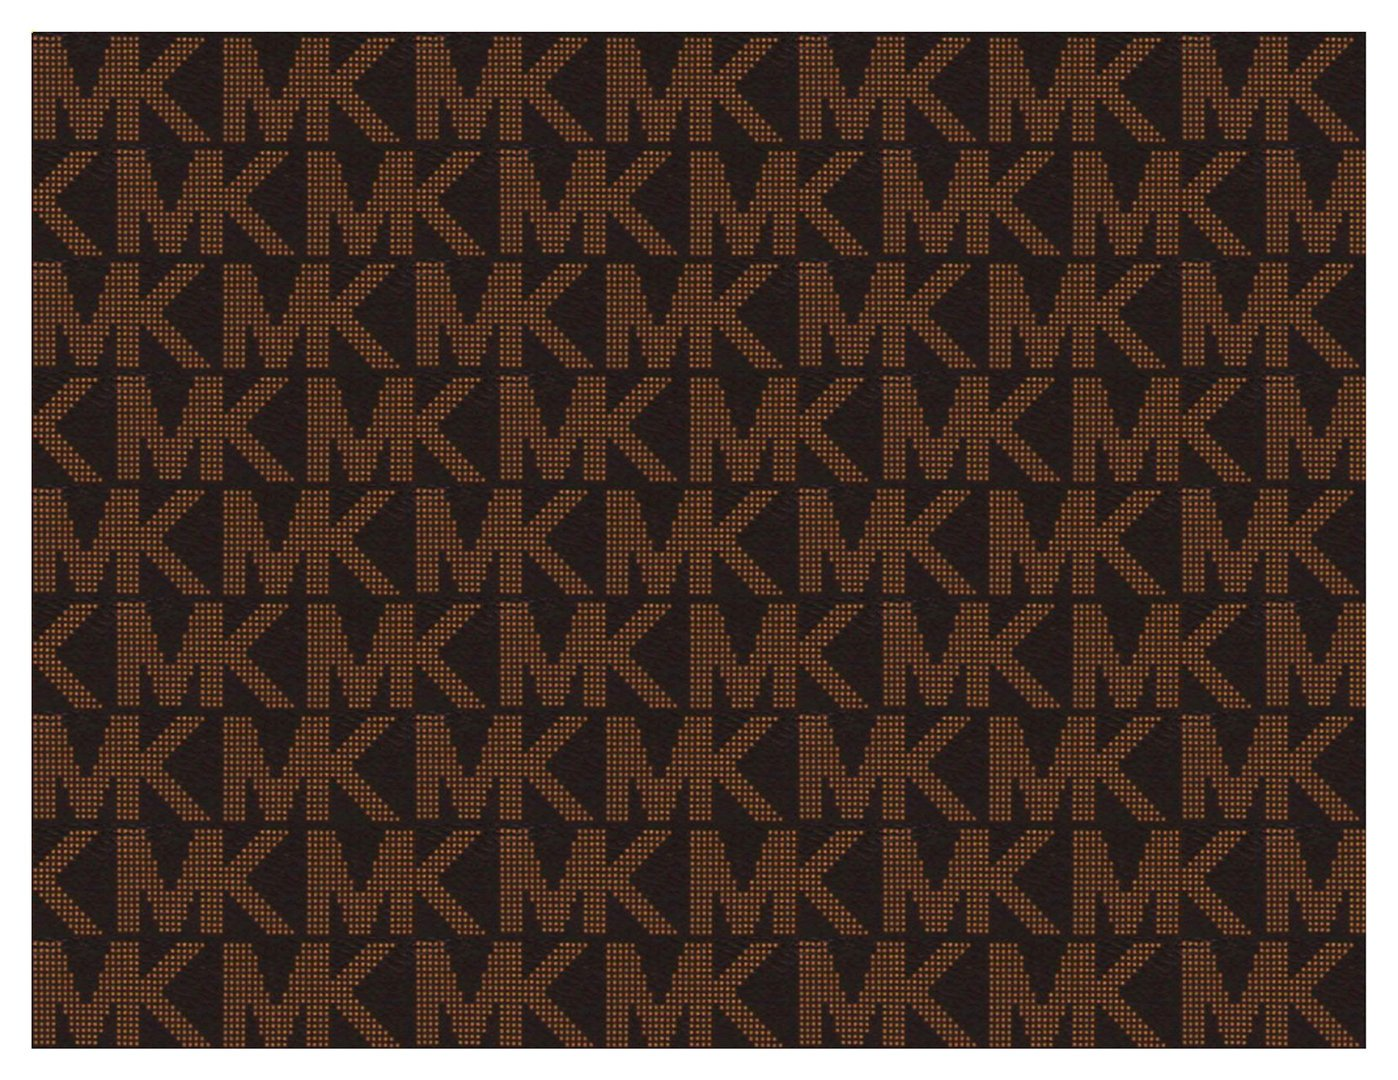 MK printed sheet cake covering and decorating